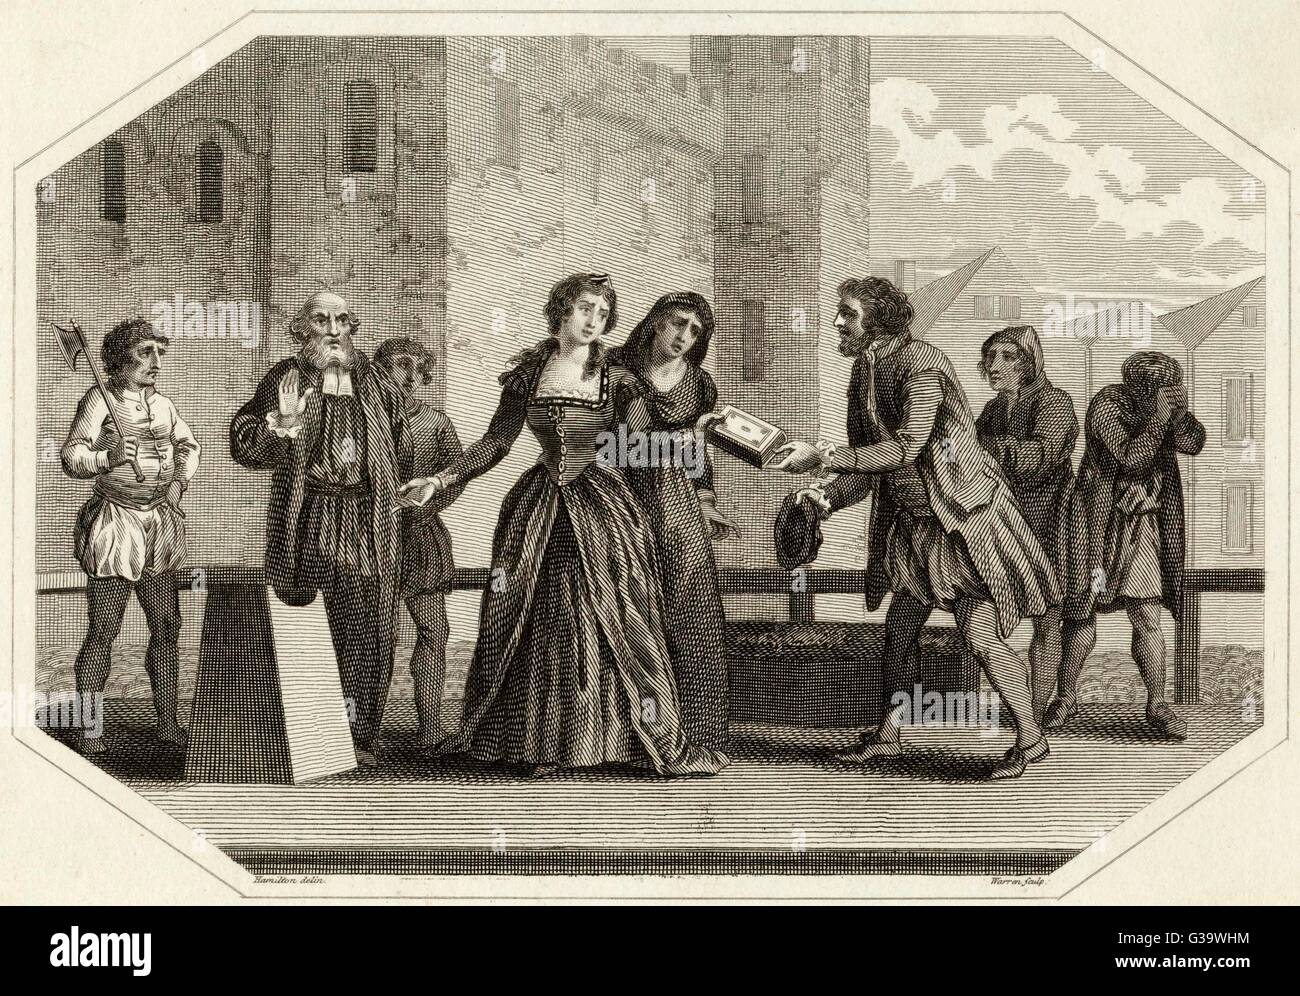 Lady Jane Grey, Queen for nine  days is beheaded at the Tower  of London on charges of  treason.  She presents her - Stock Image